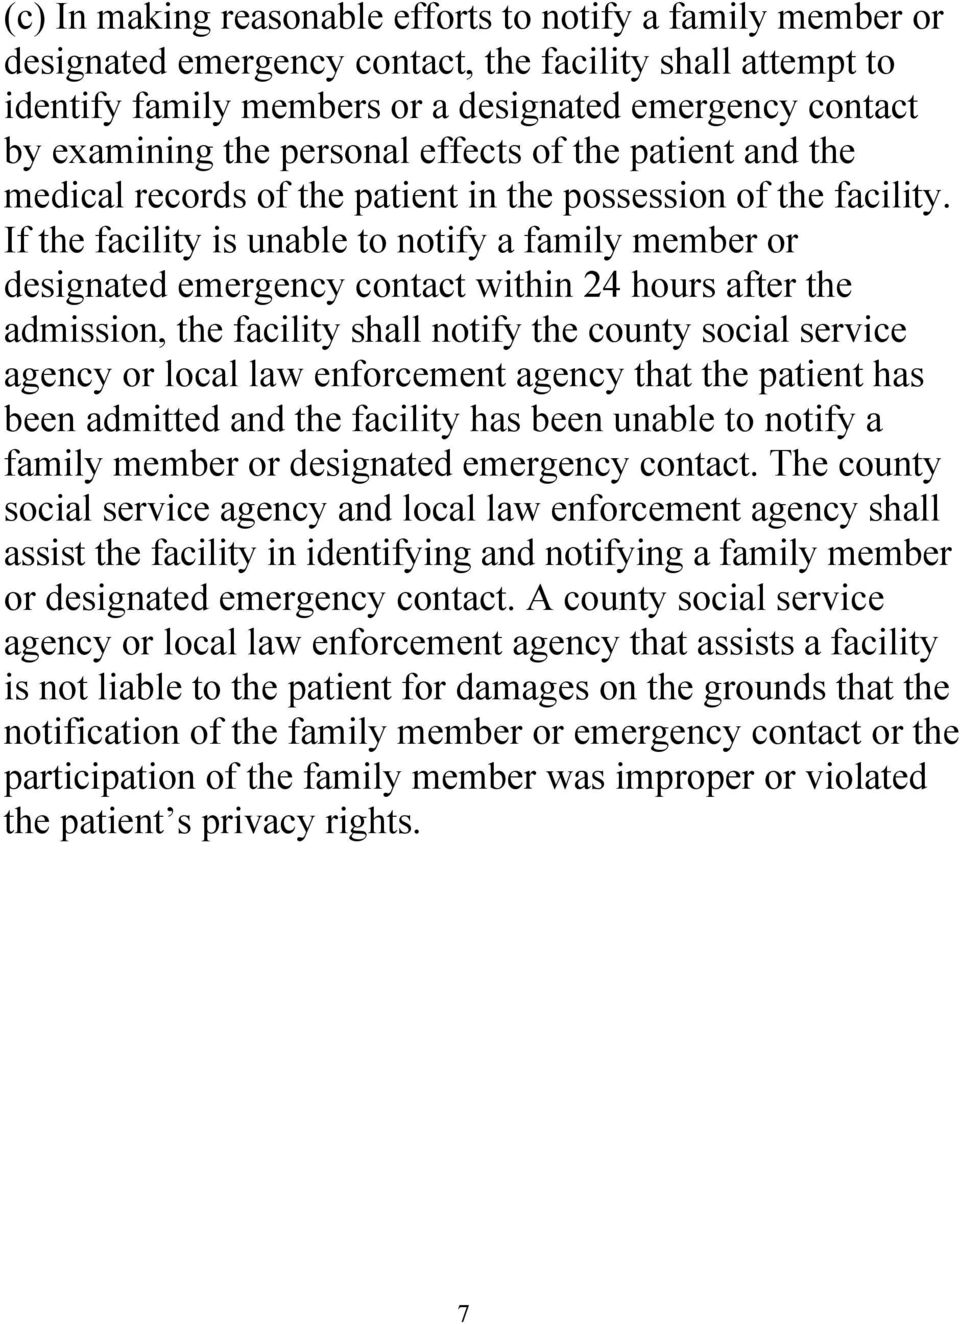 If the facility is unable to notify a family member or designated emergency contact within 24 hours after the admission, the facility shall notify the county social service agency or local law